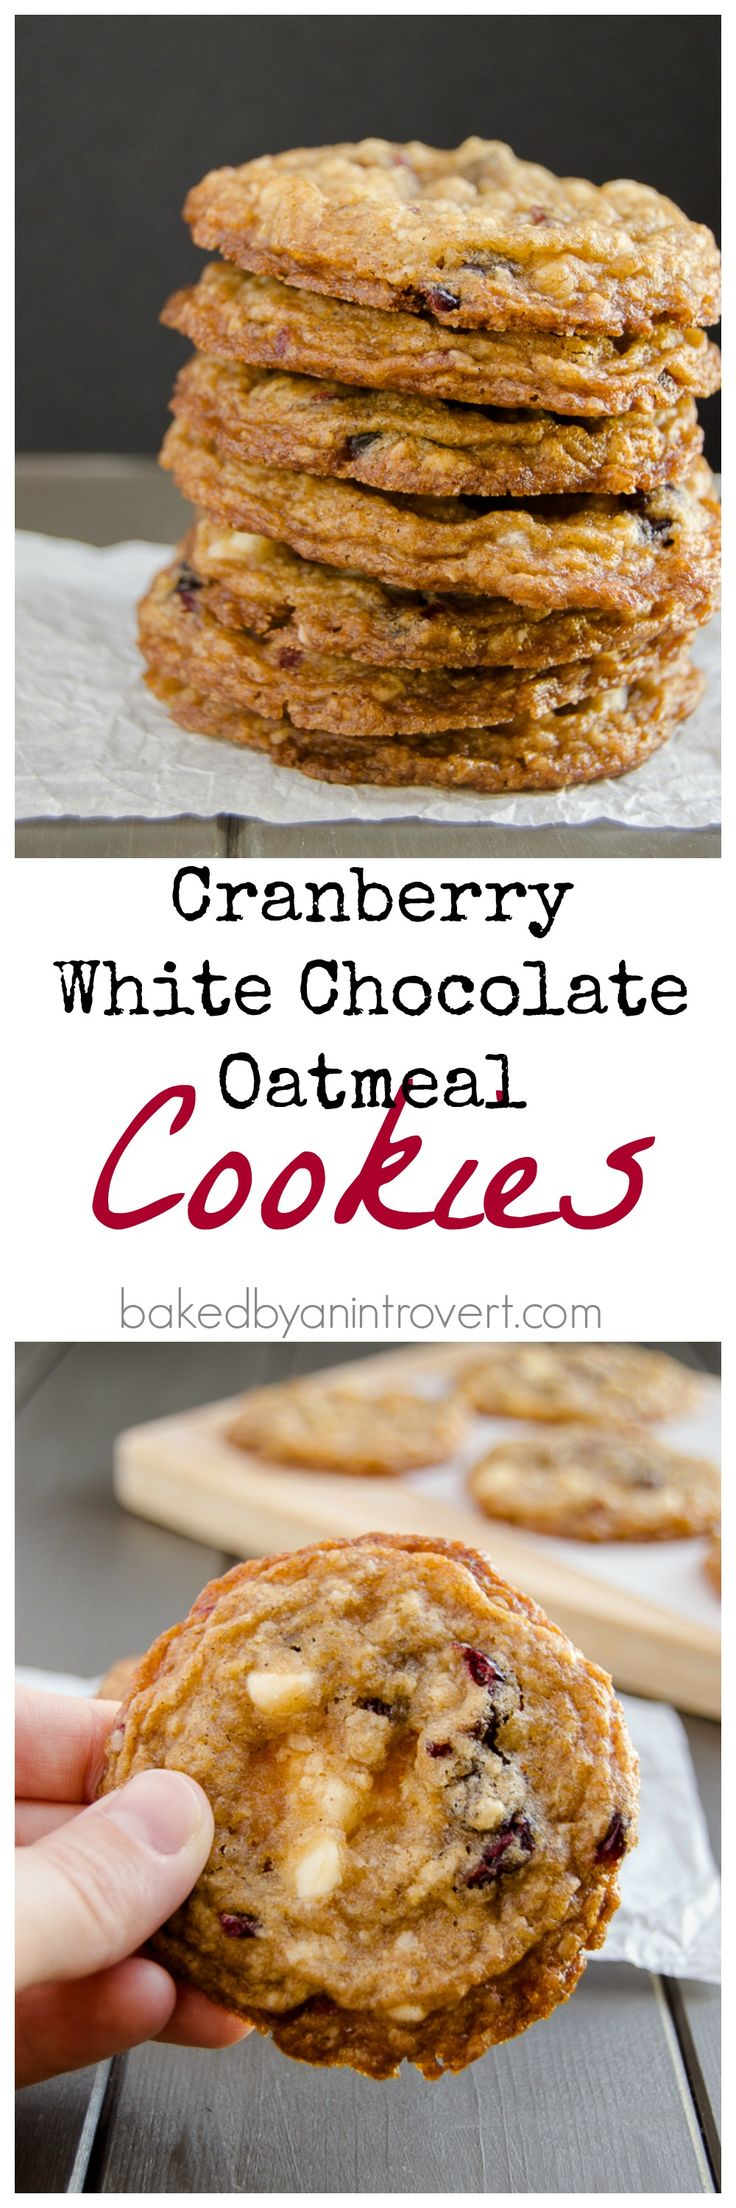 Cranberry White Chocolate Oatmeal Cookies - Amazingly chewy and simple oatmeal cookies with dried cranberries and white chocolate chips. From @jenbakesblog